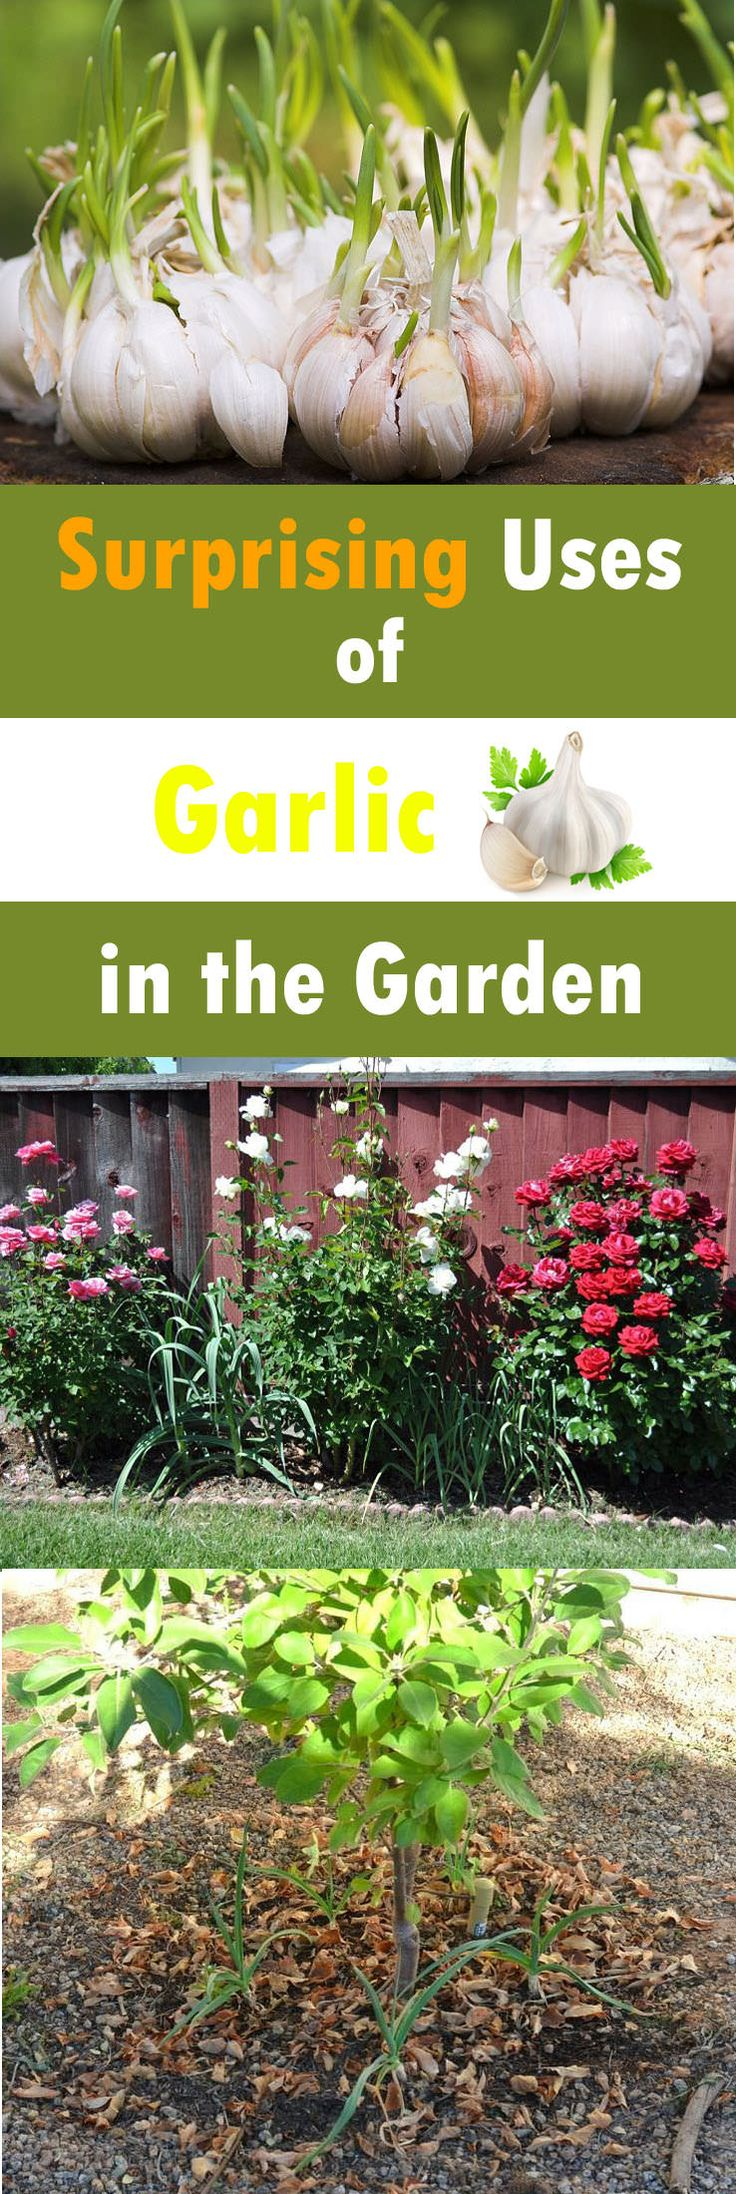 Using garlic in the garden is a great way to save yourself from using harmful chemical pesticides and fungicides as garlic has antibacterial, fungicidal and insecticidal properties.